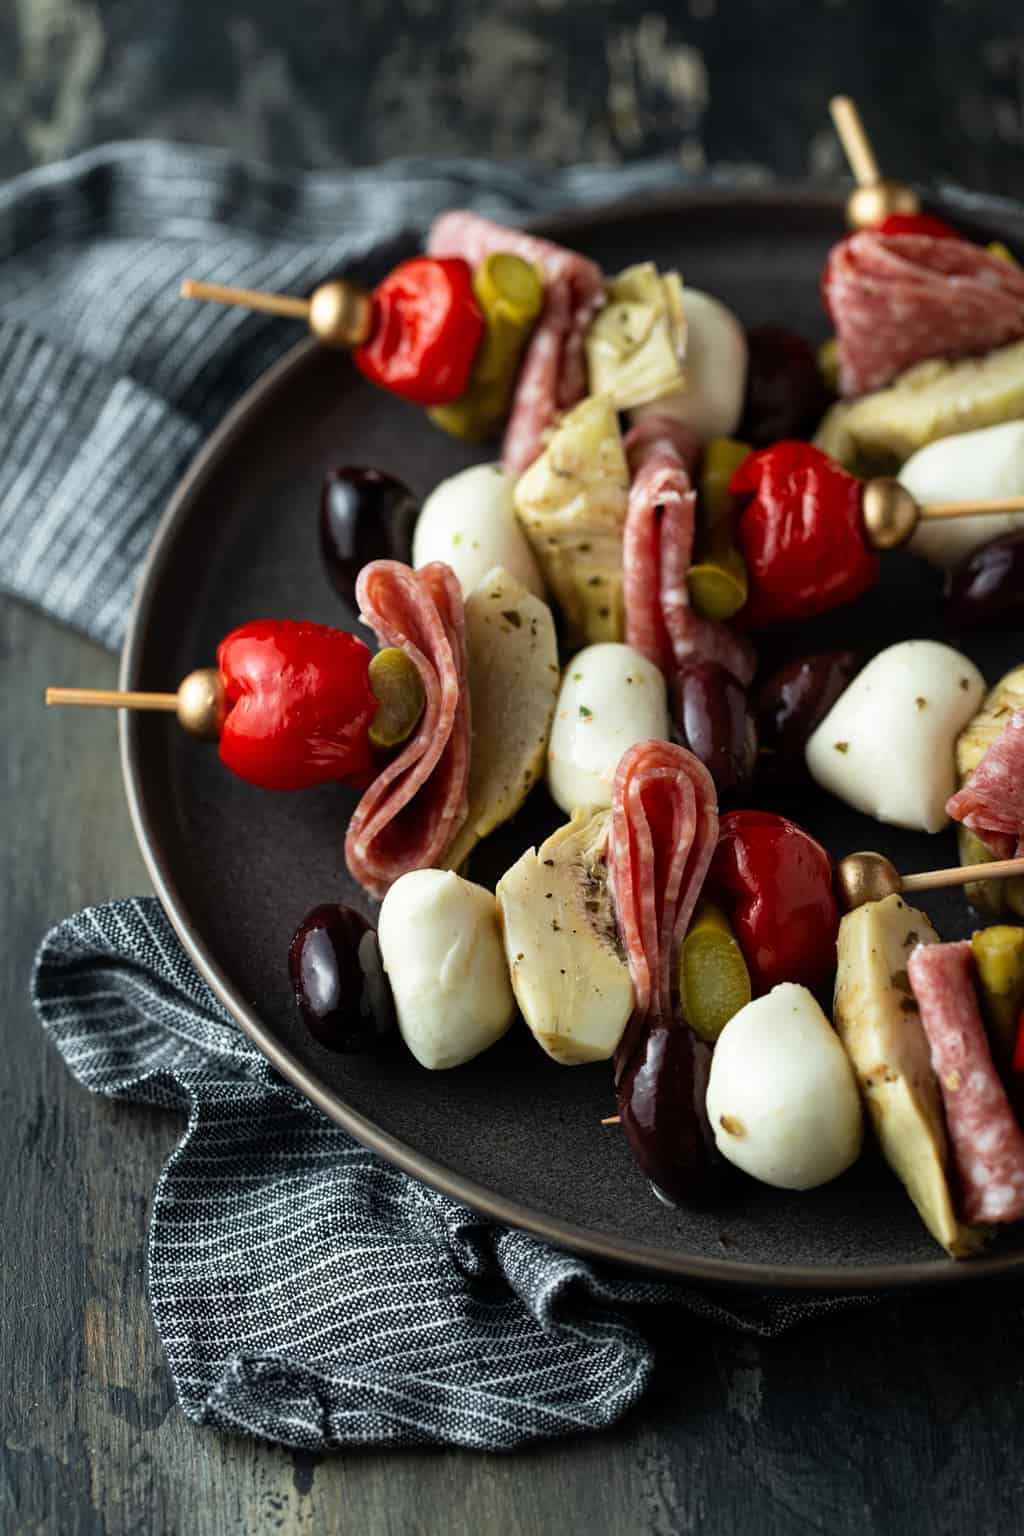 antipasto on a serving plate with a striped napkin.